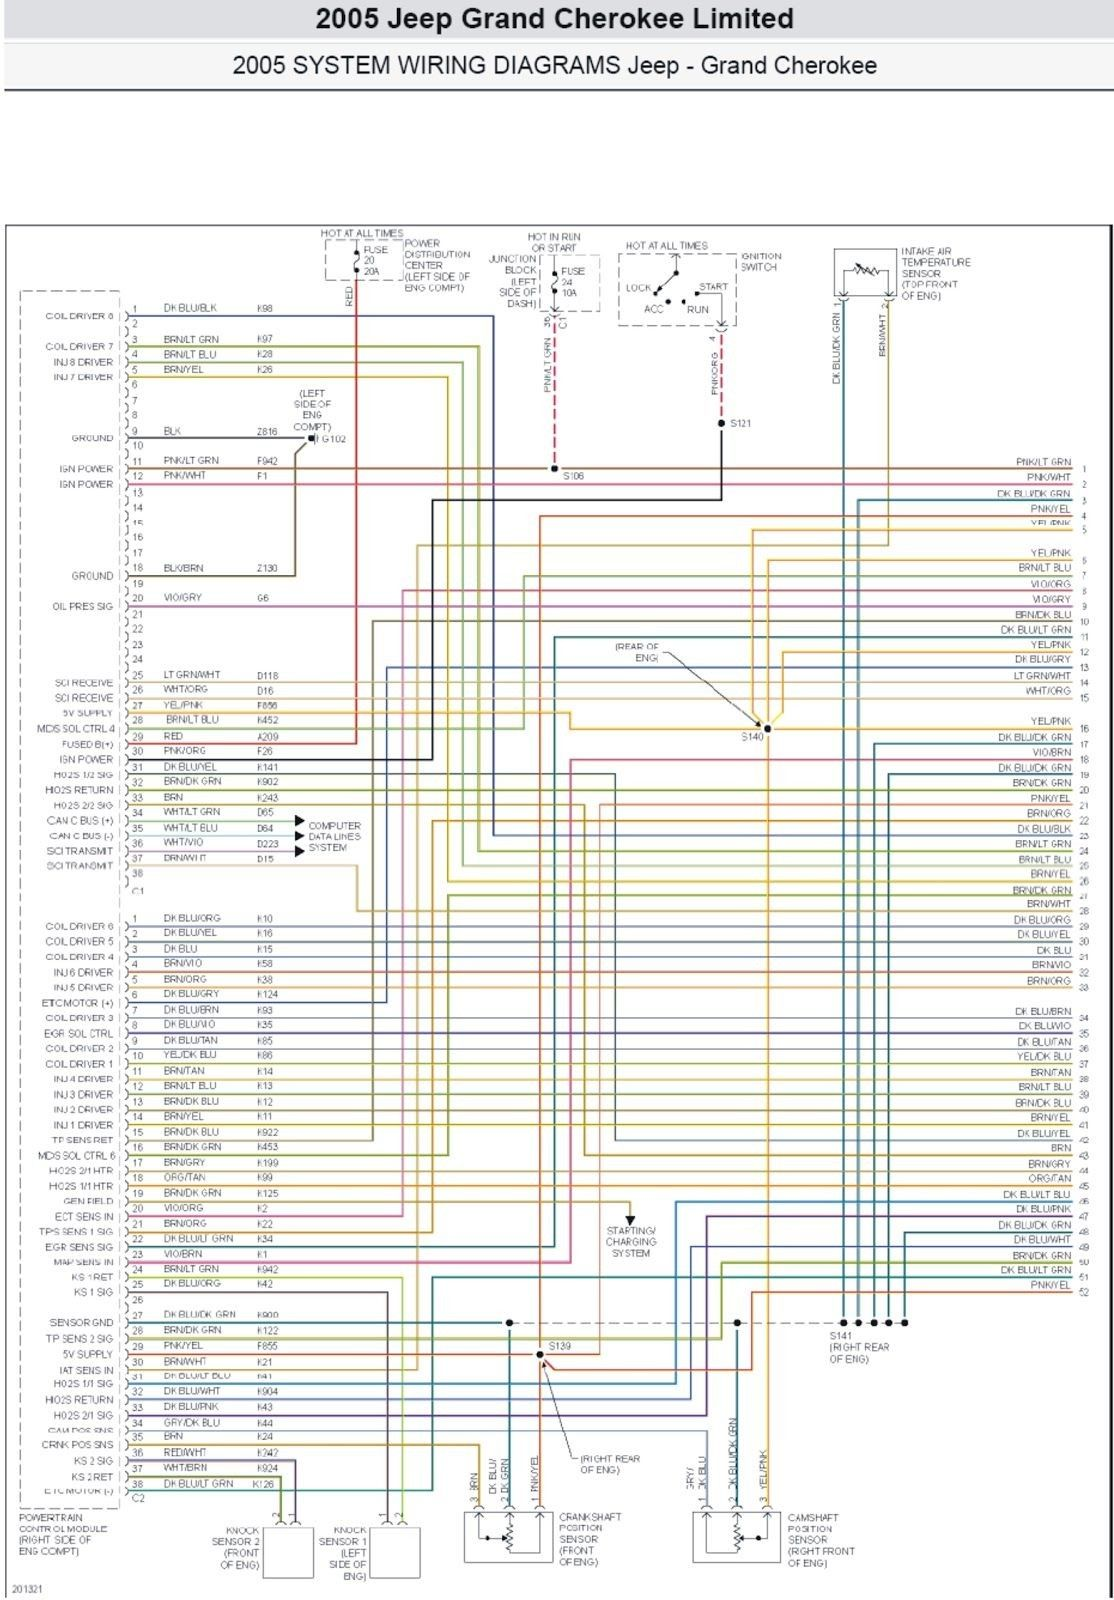 wiring diagram for 2002 jeep grand cherokee - obd2 connector to usb wiring  diagram for wiring diagram schematics  wiring diagram schematics